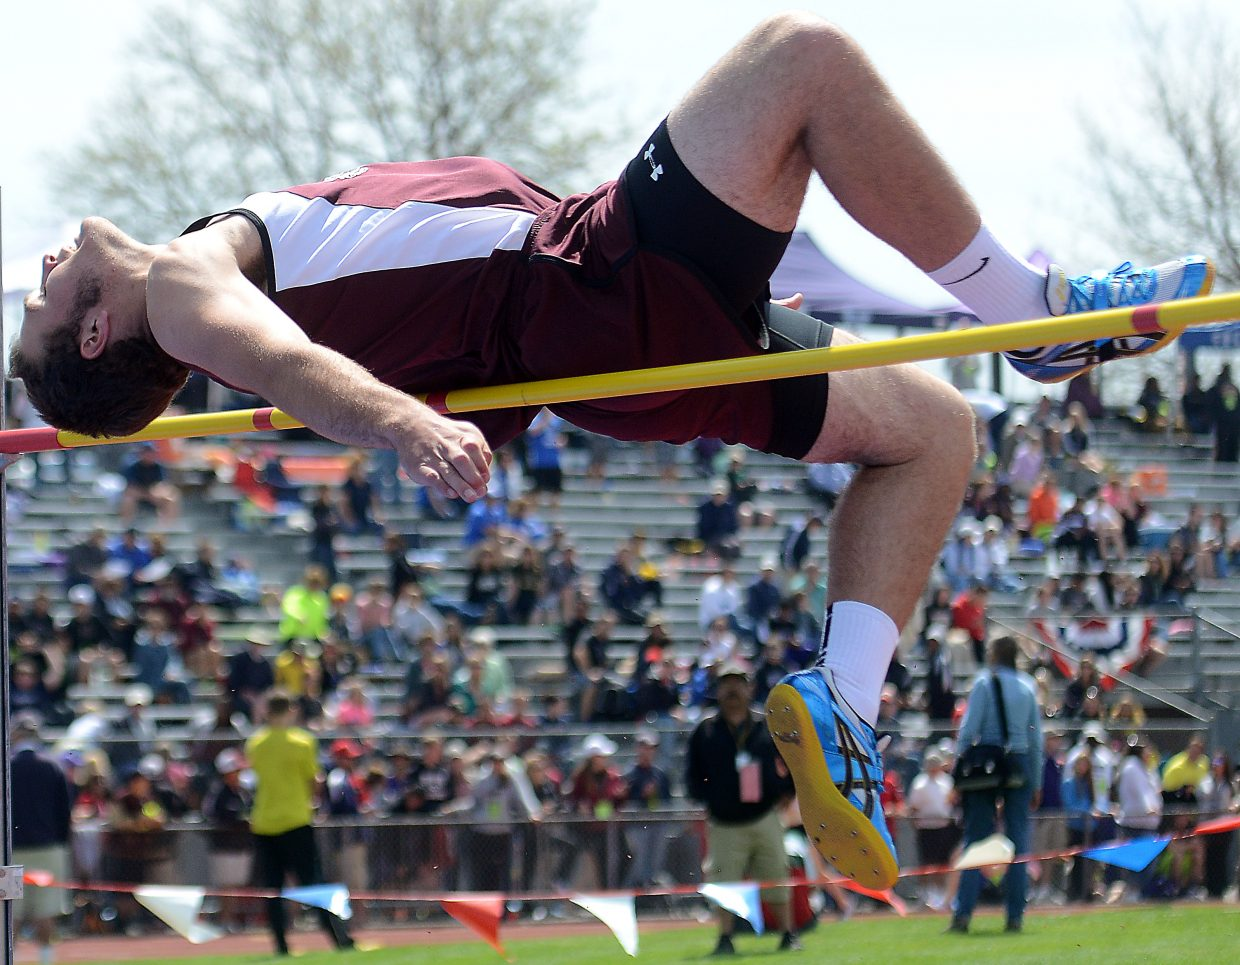 Soroco senior Ryan Jeep tries to clear the bar during Saturday's high jump event at the state track meet.